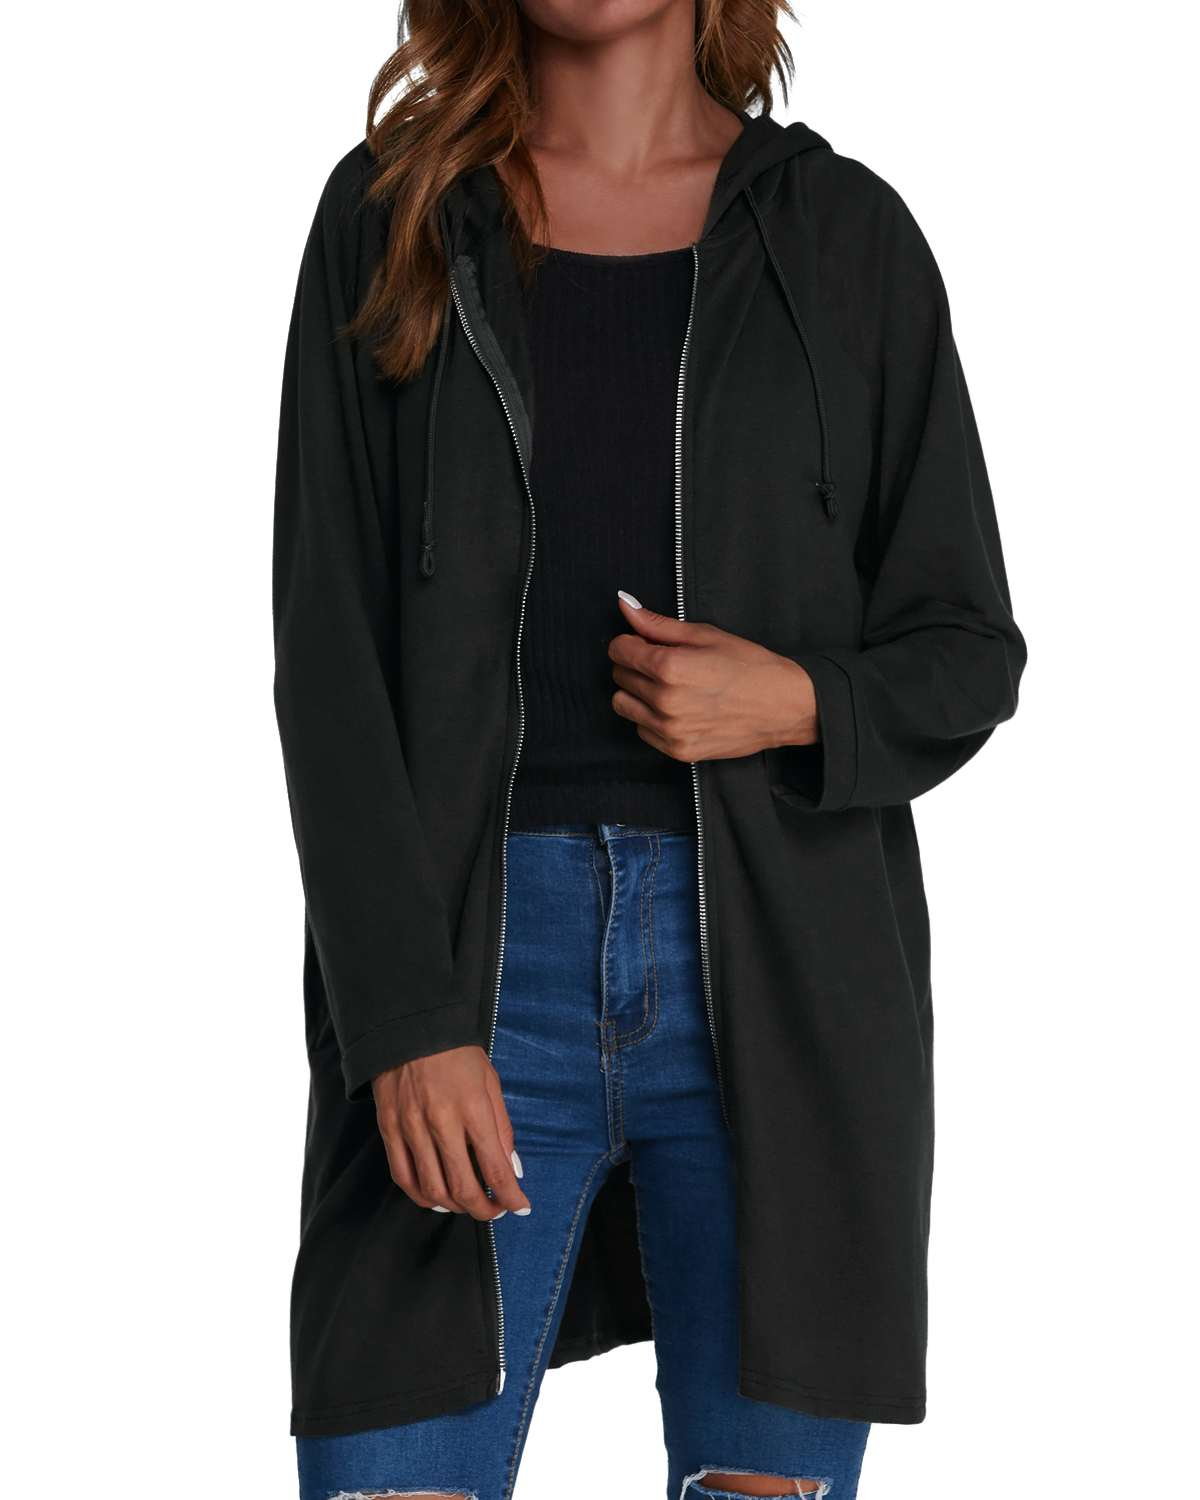 ZANZEA 2019 Spring Women   Trench   Coats Autumn Casual Straight Hooded Long   Trench   Solid Color Zipper Pockets Cardigan Coats Female